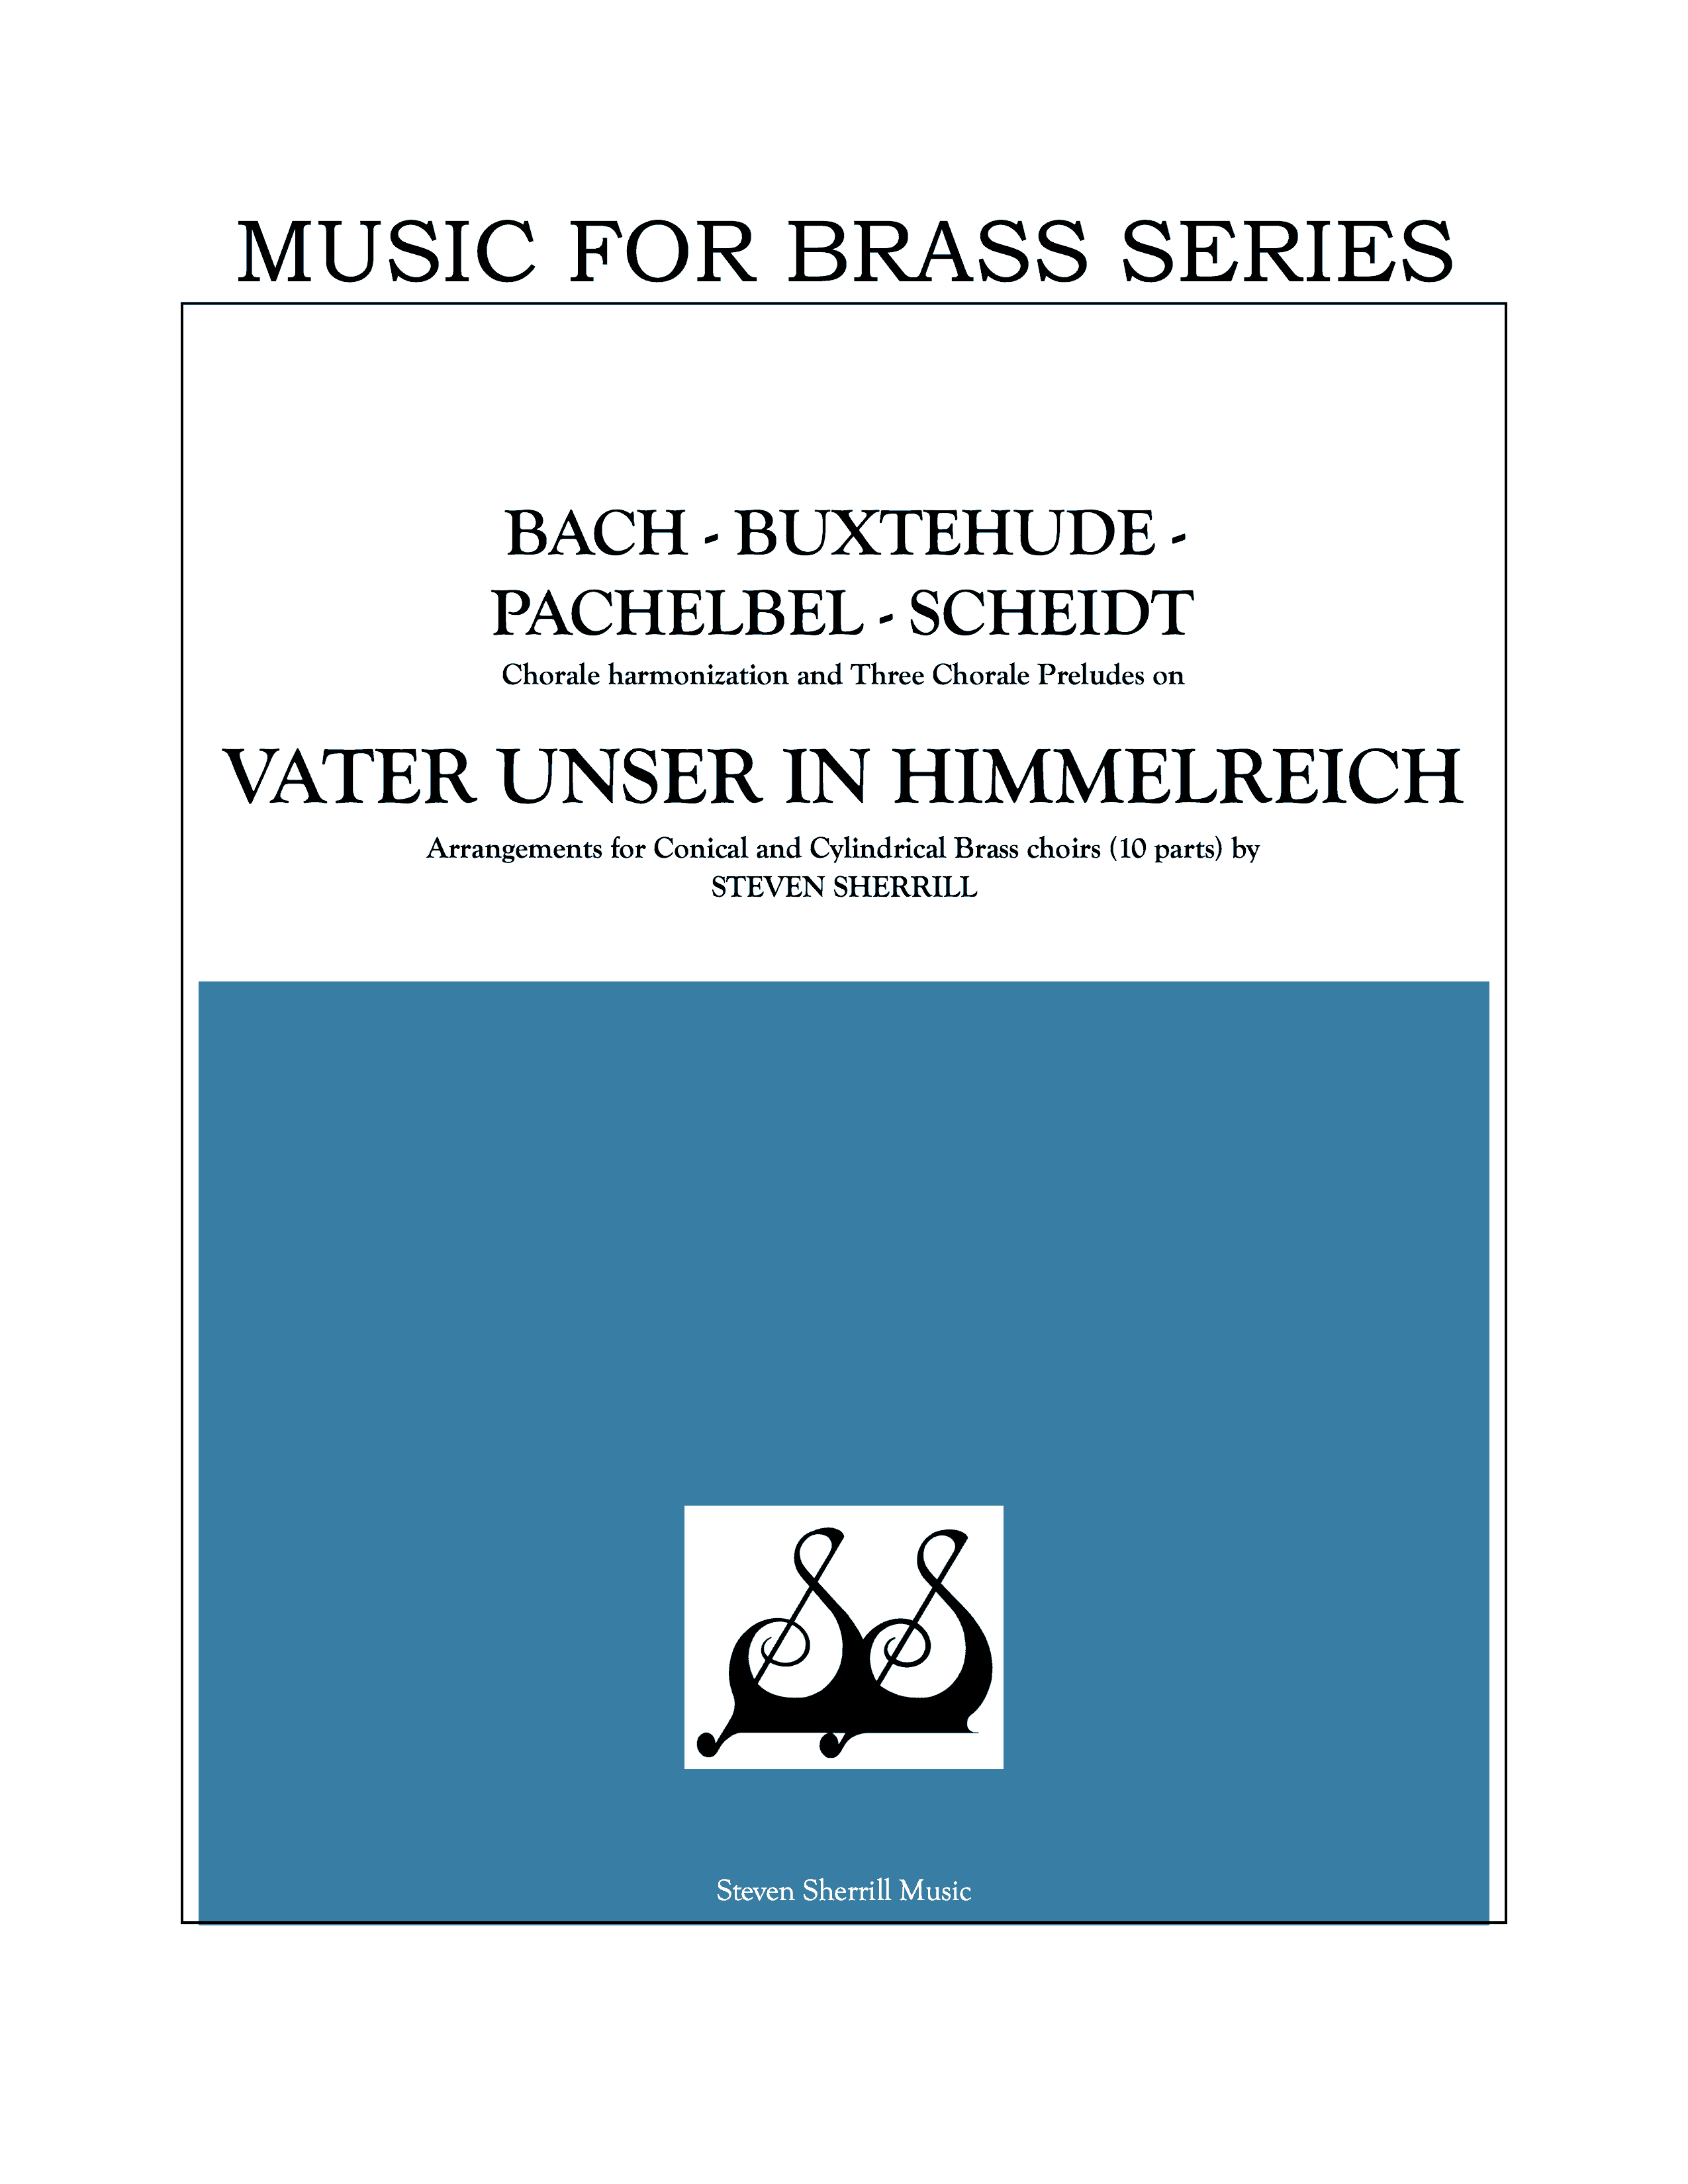 Vater unser in Himmelreich cover page